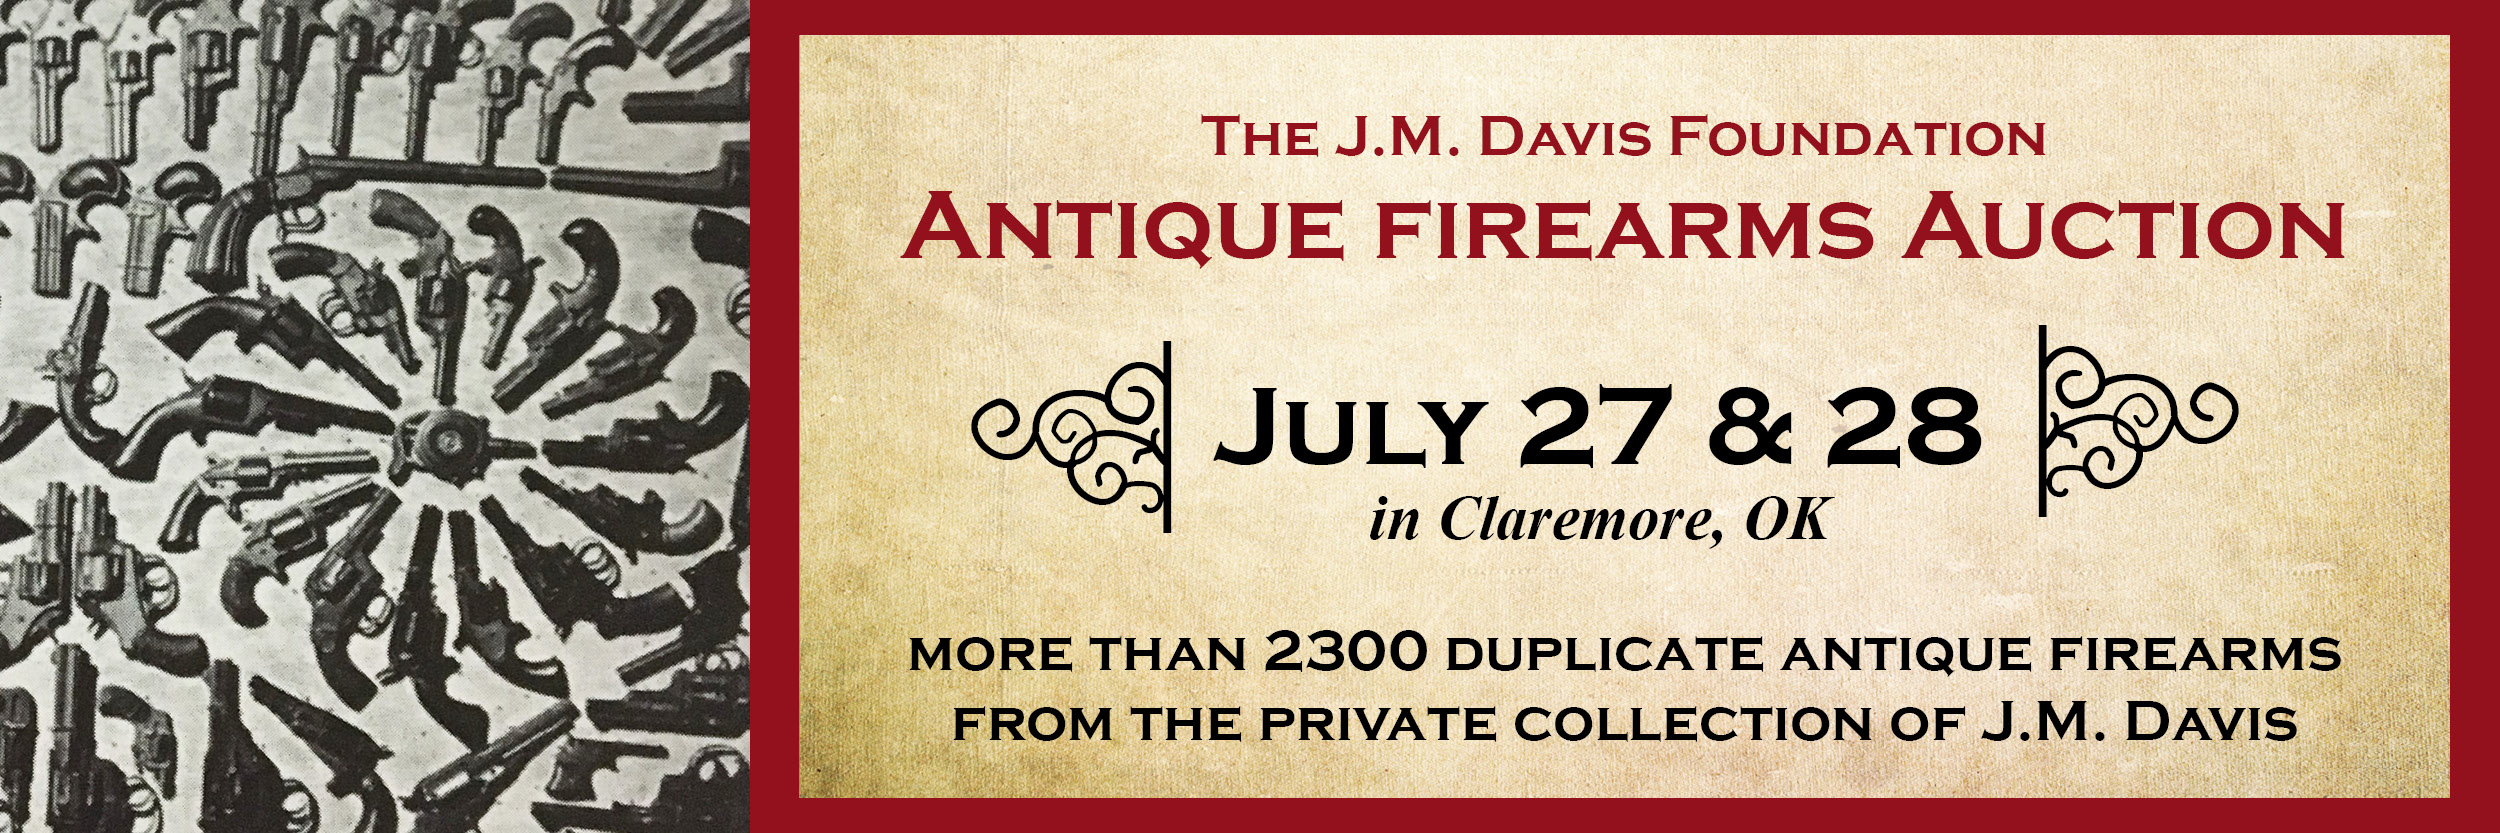 J.M. Davis Foundation Antique Firearms Auction